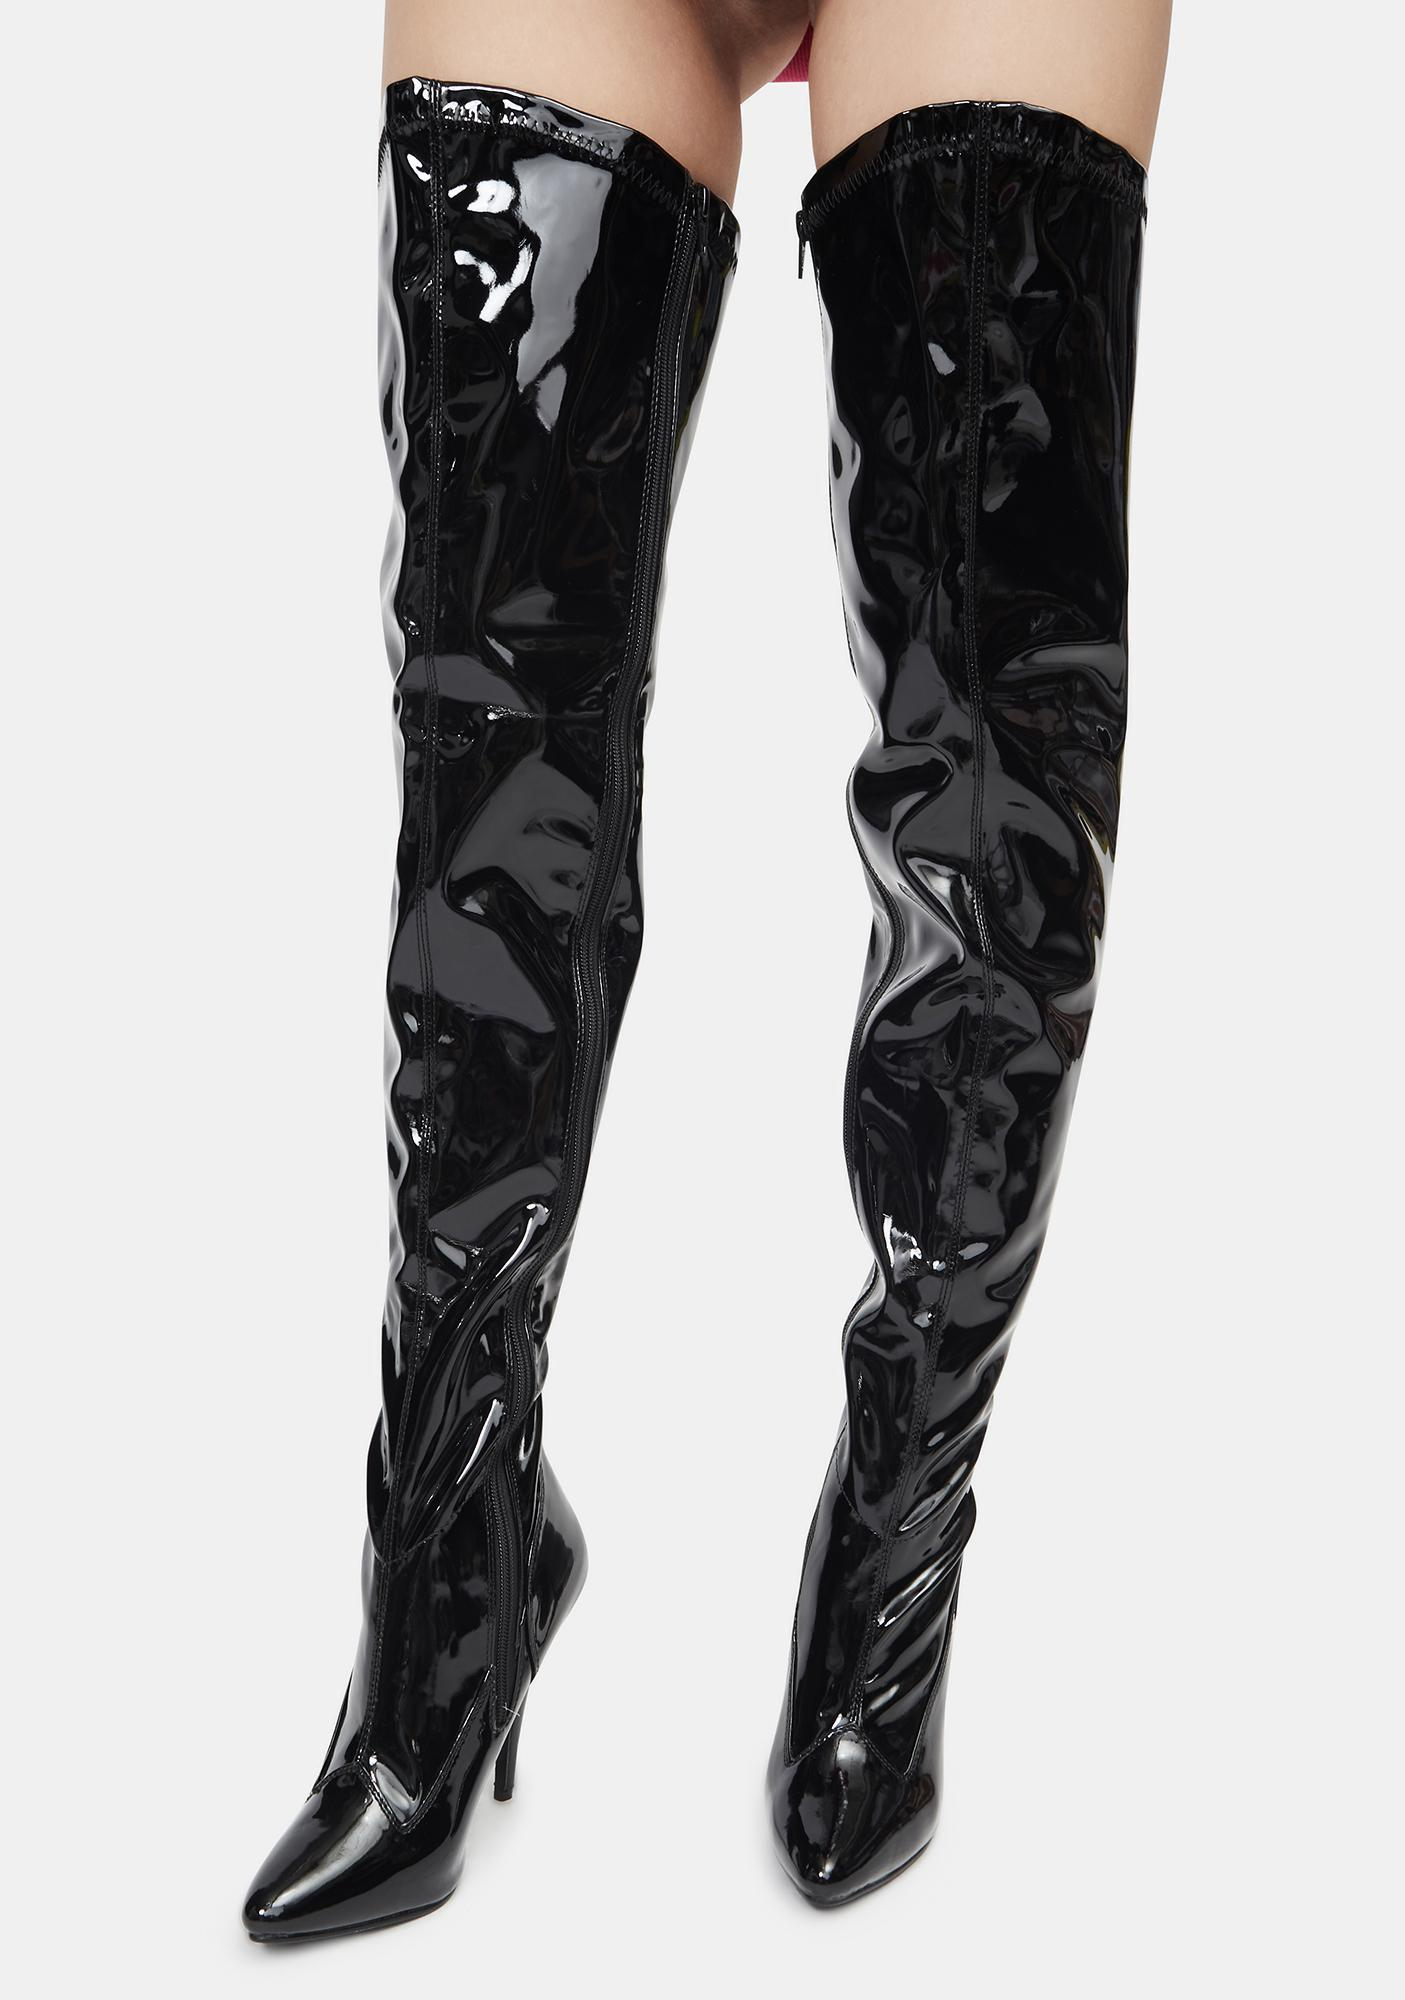 Pleaser Black What I Deserve Patent Thigh High Boots